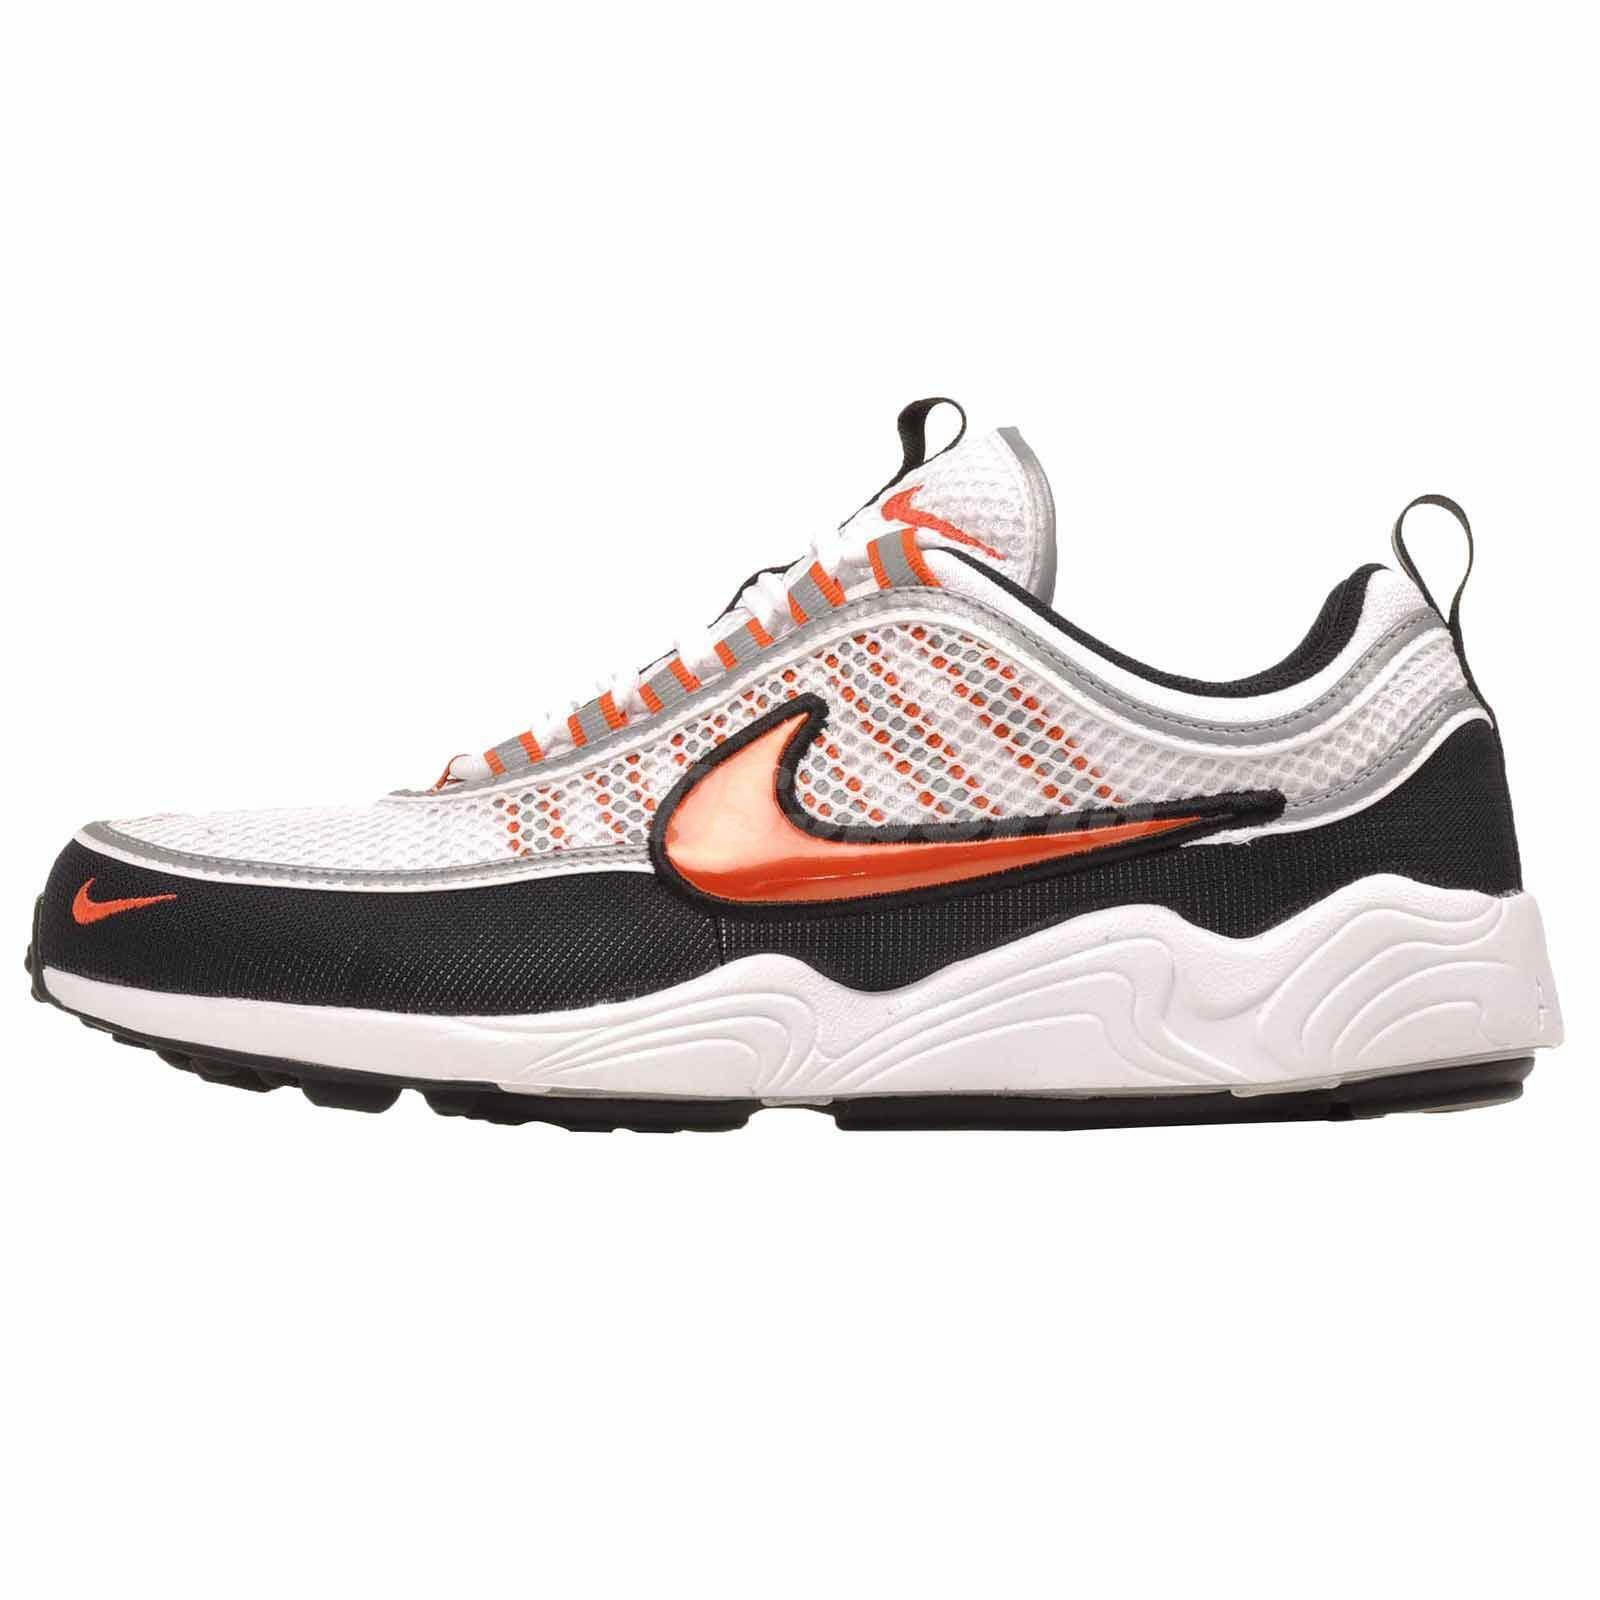 Nike Air Zoom Spiridon 16 Running Mens shoes White Team orange 926955-106